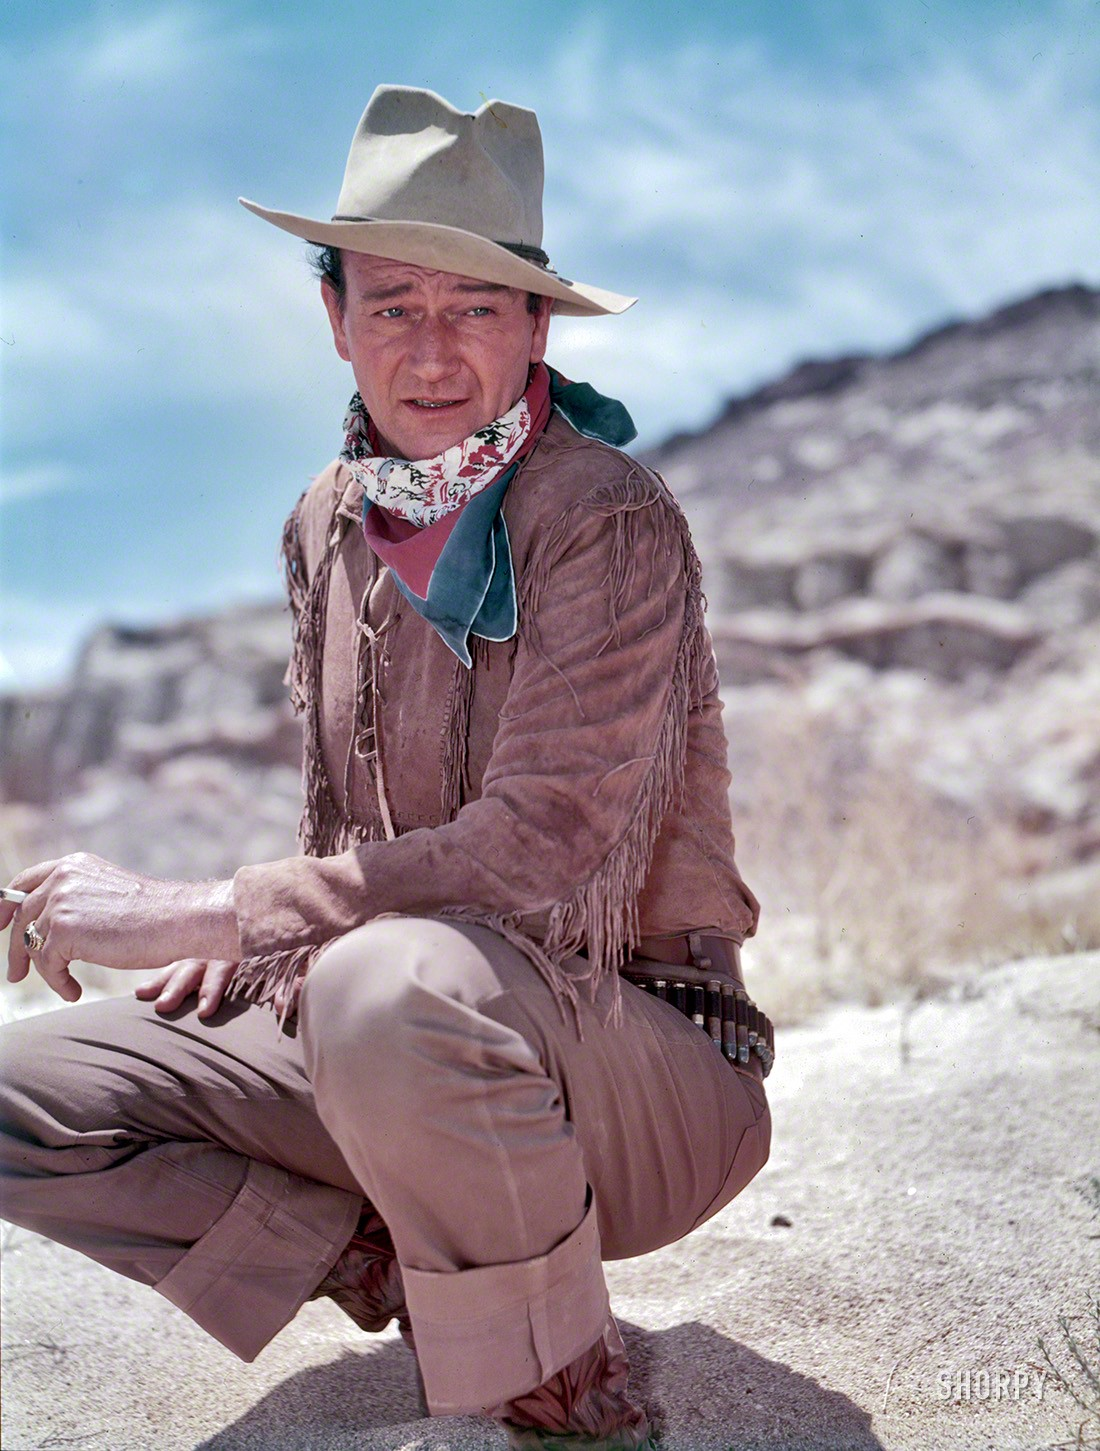 dde1ce9b He was ugly, strong, and had dignity — Uncovering John Wayne's hidden  treasure